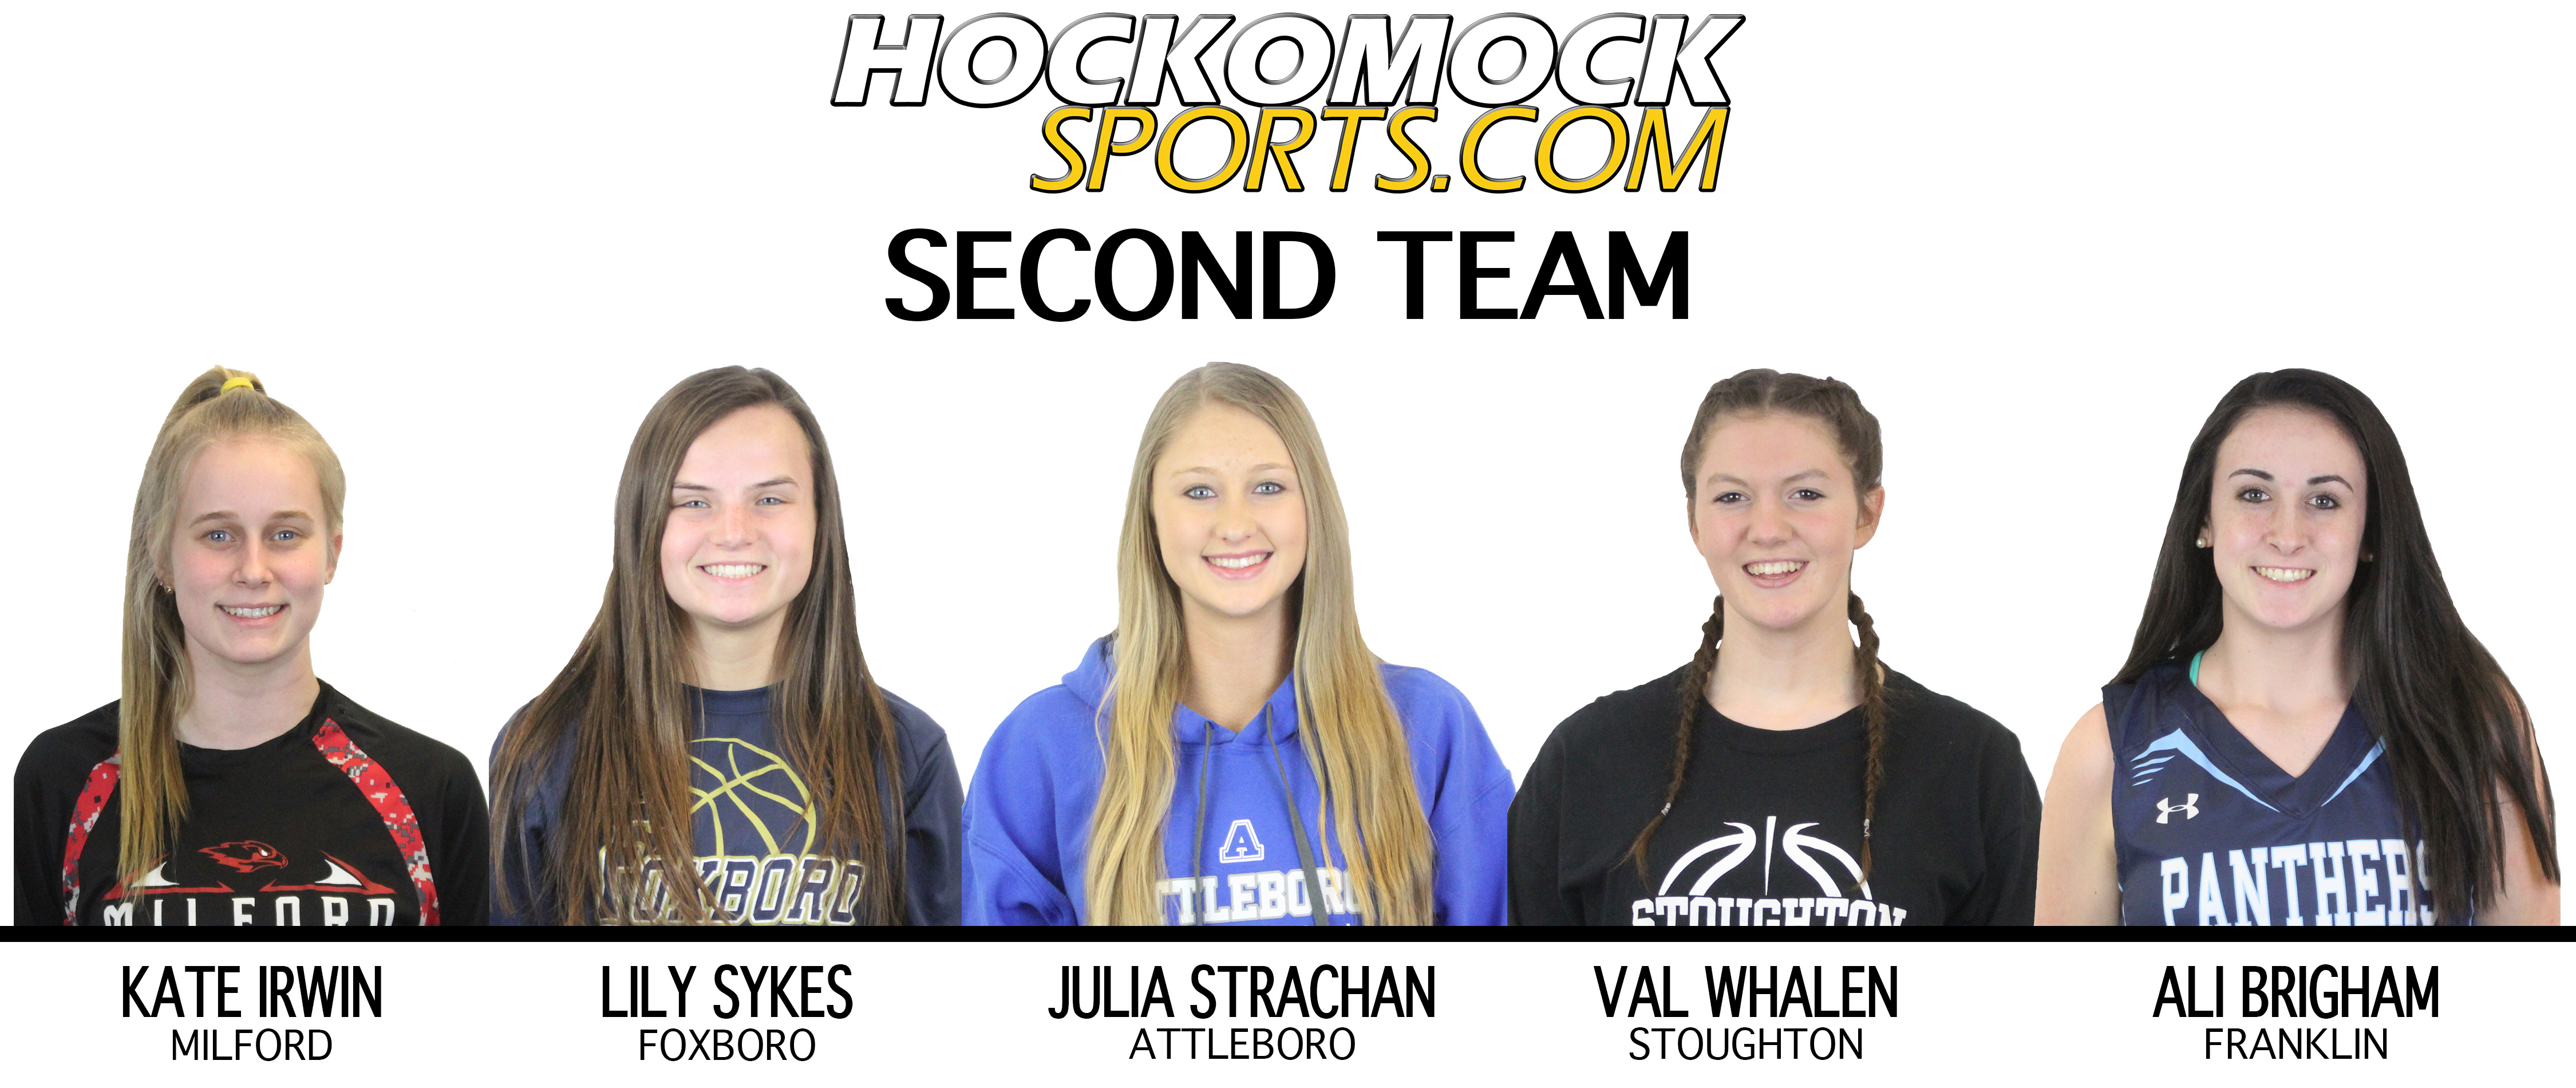 HockomockSports.com Second Team - Girls Basketball